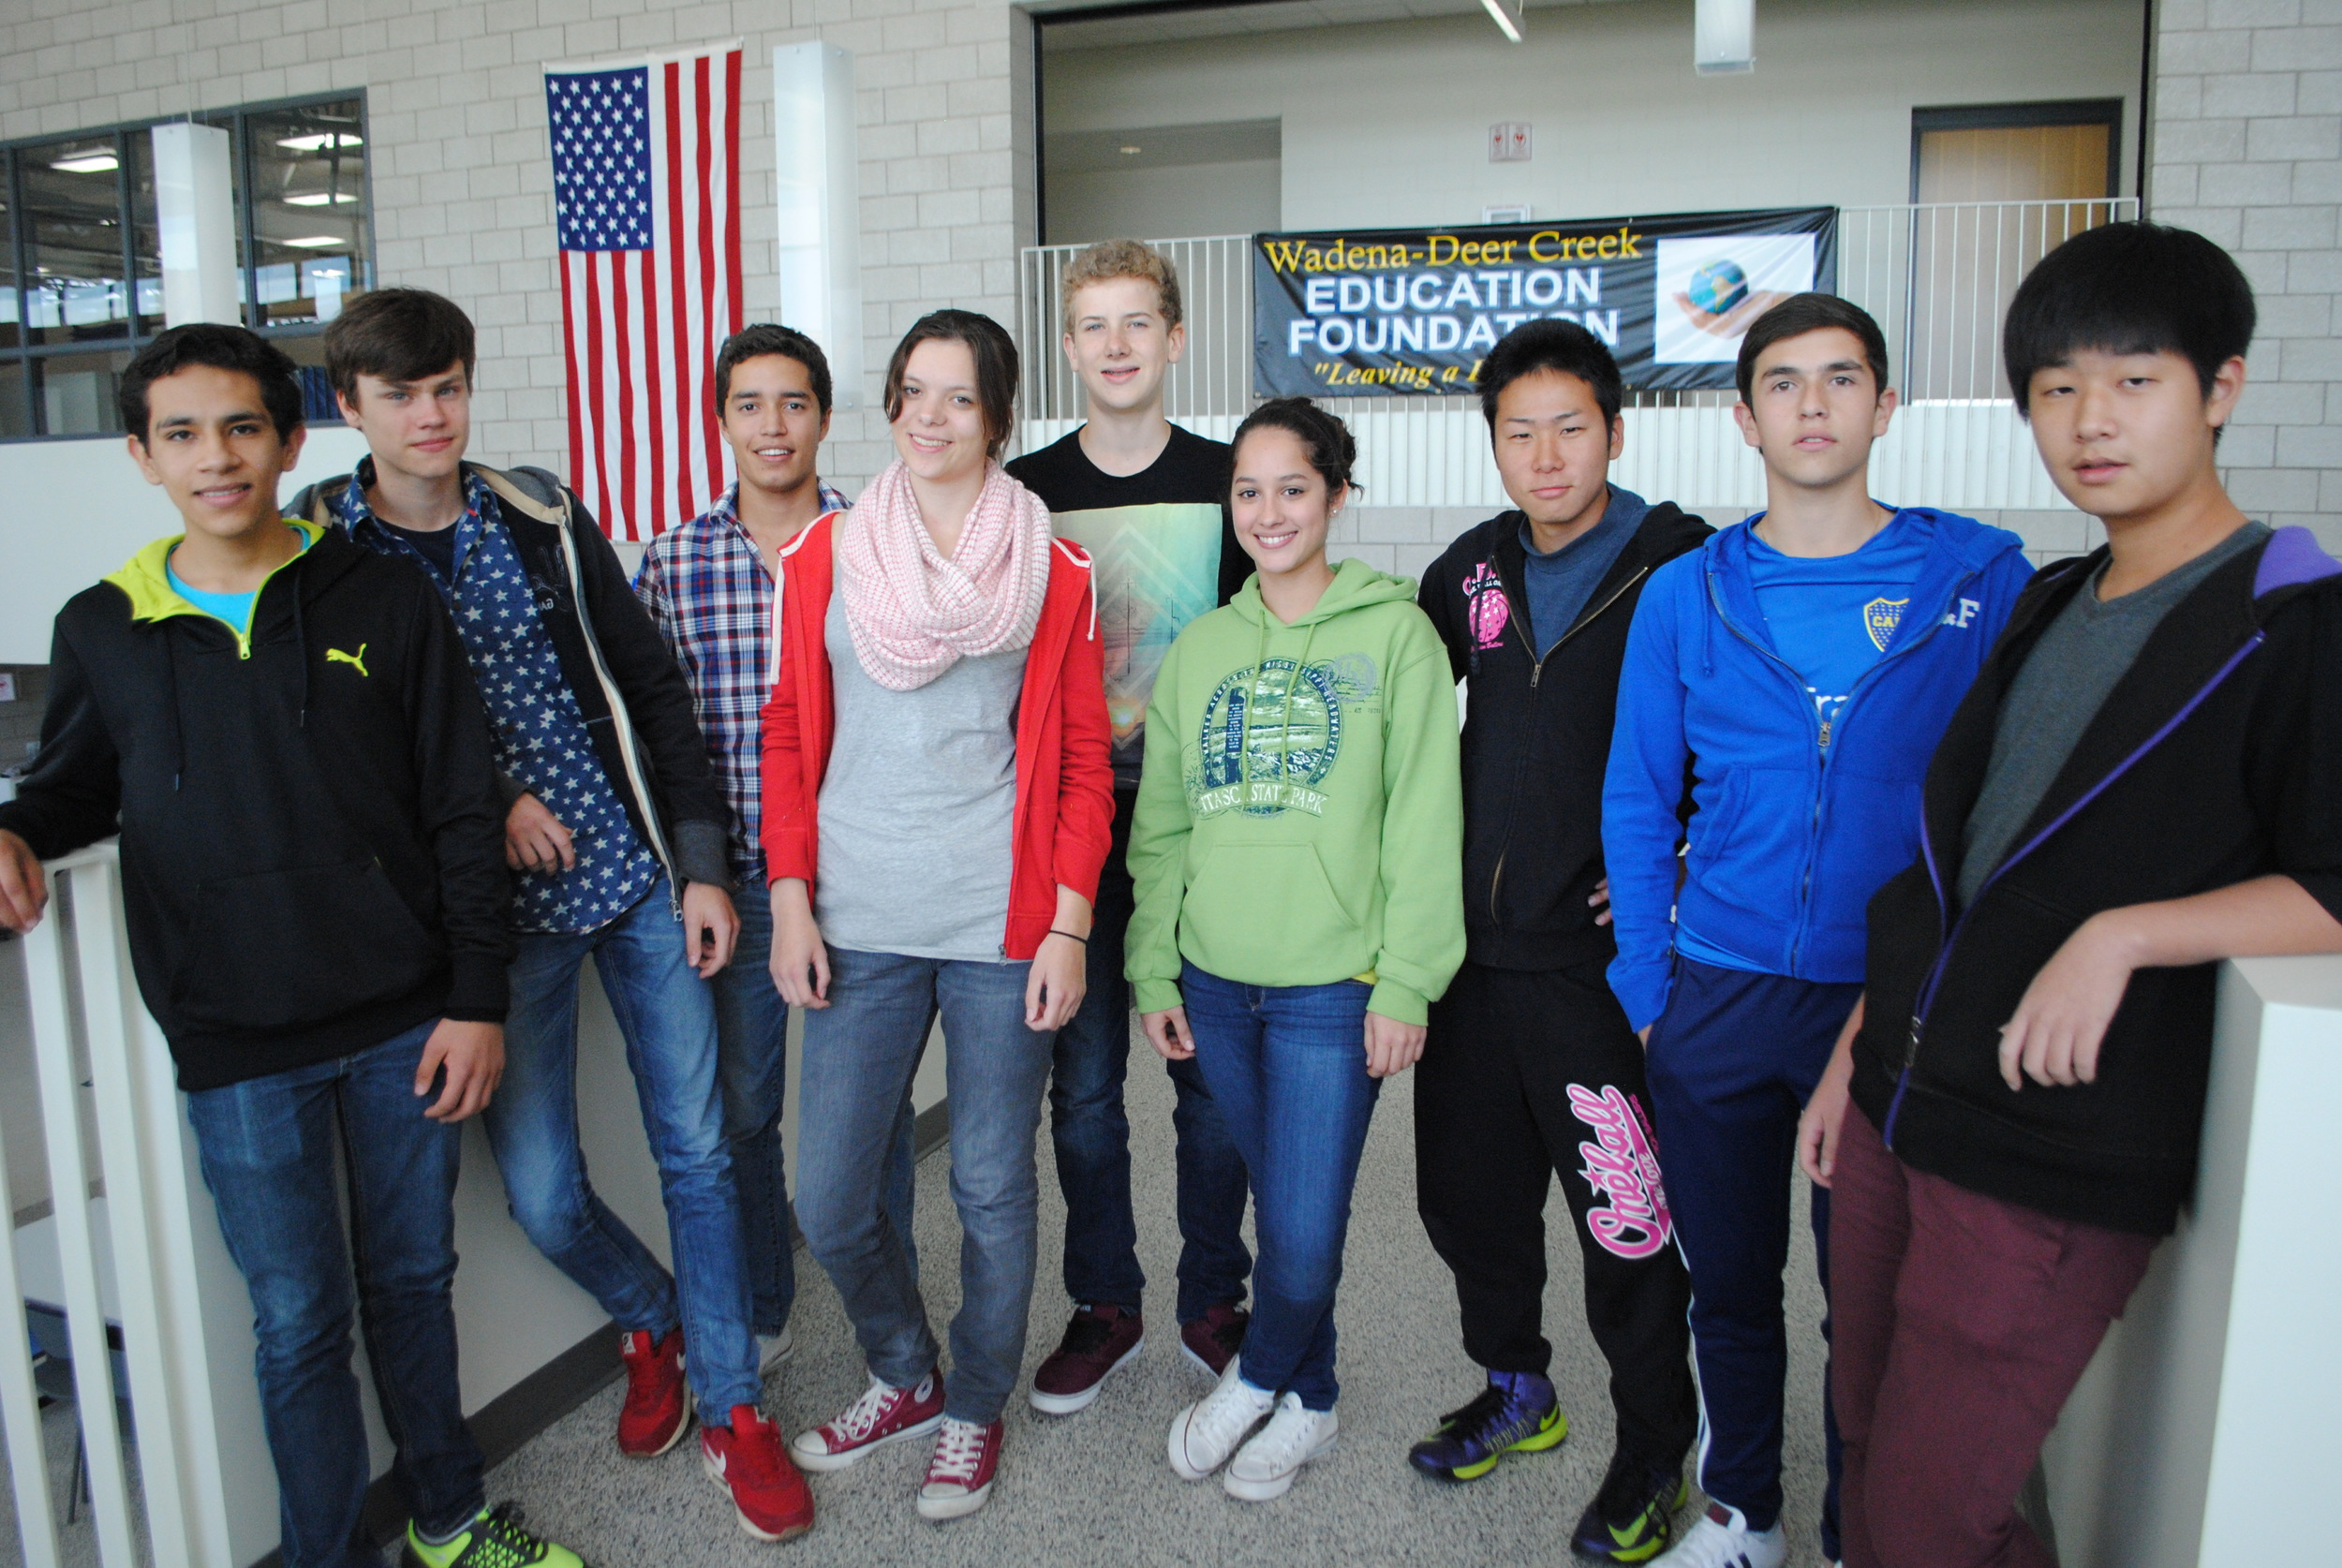 "WDC High School welcomes nine foreign exchange students for 2014-15 school year. From left to right: Jose Sandoval (Mexico), Mika Petersenn (Germany), Diego Anzures (Mexico), Laura Stangenberg (Germany), Neil Bachmann (Germany), Gabriela Noronha (Brazil), Kota Nishida (Japan), Joaquin Gutierrez Vargas (Bolivia), and Seons Yoon ""Luke"" Kim (South Korea). (Photo by Dana Pavek, WDC Schools)"